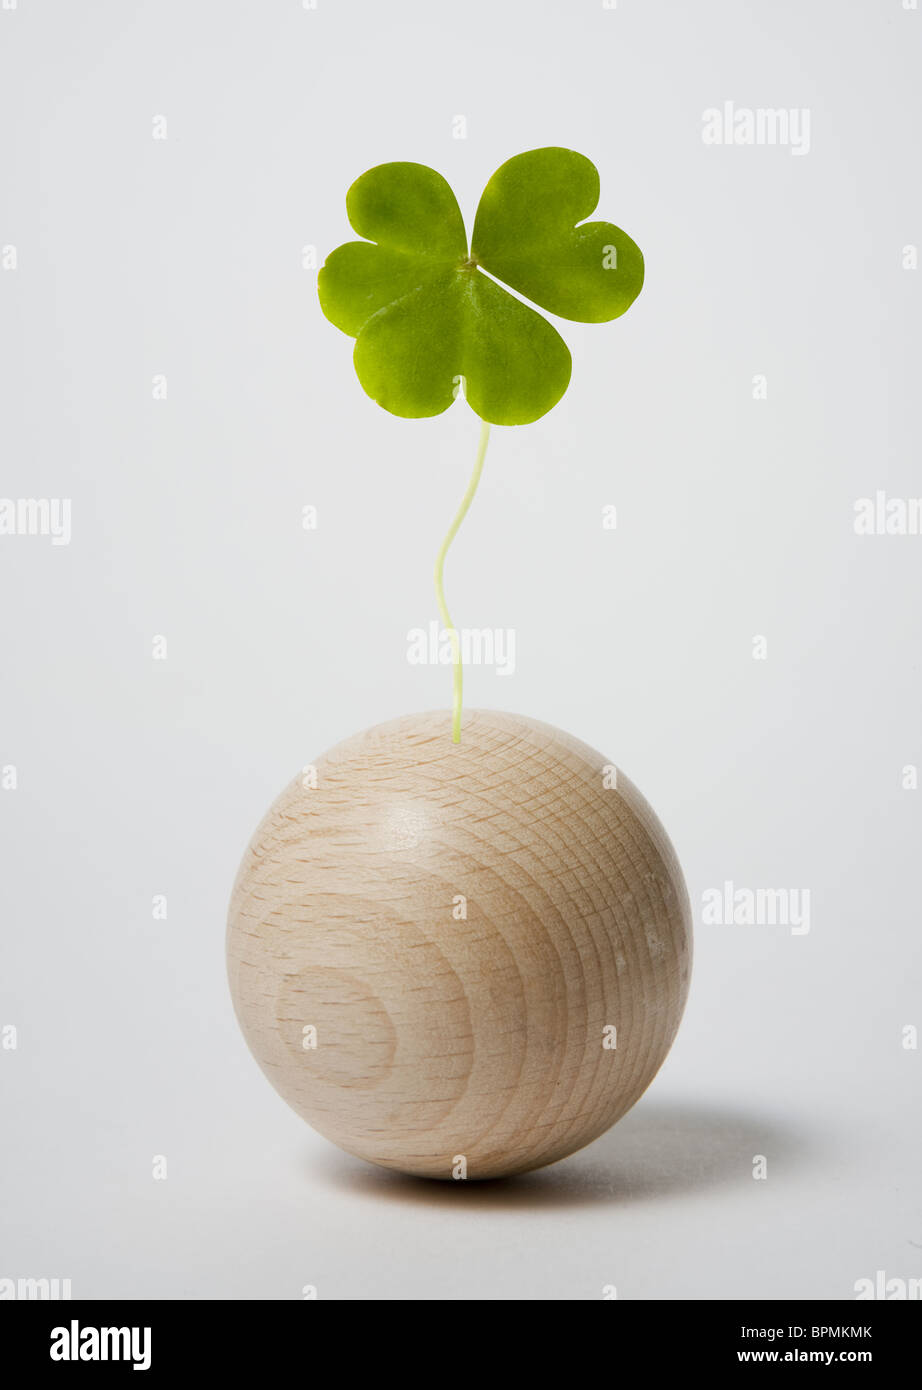 Wooden ball and clover - Stock Image